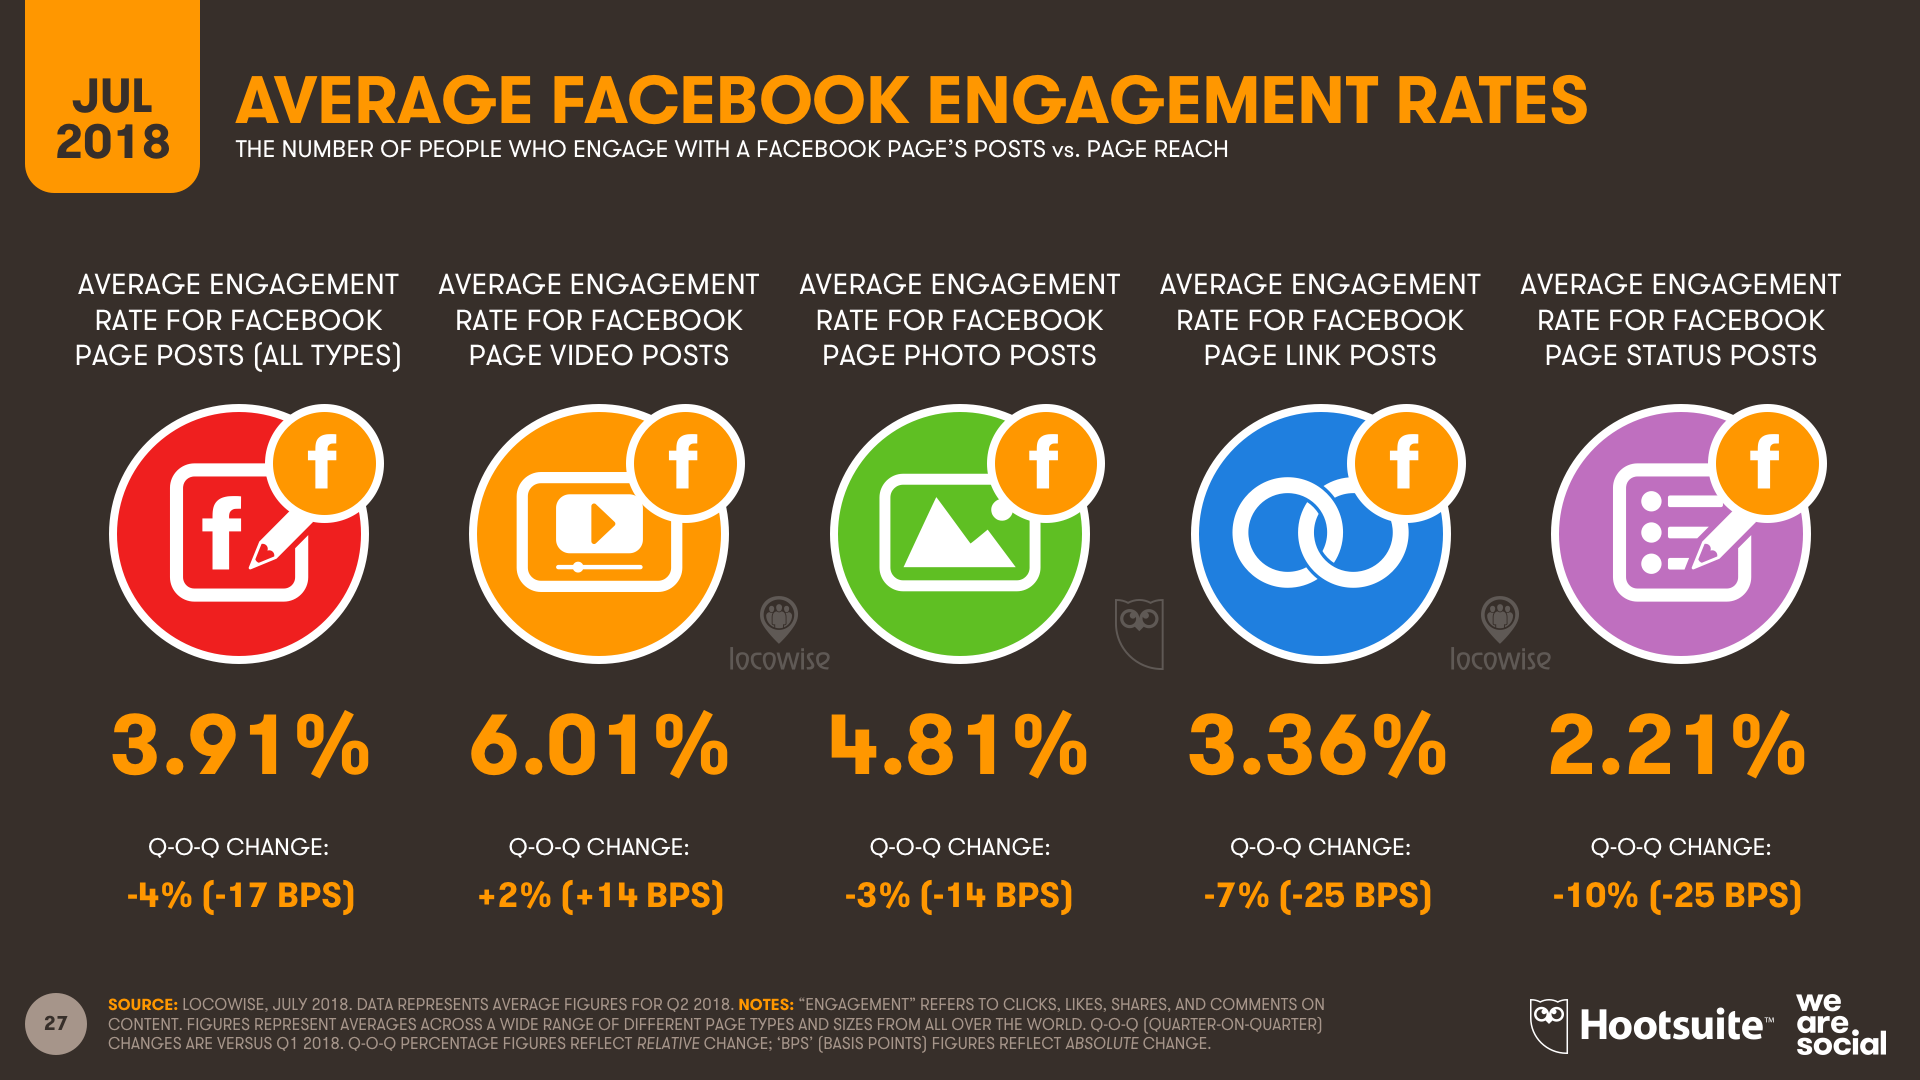 Q3 2018 - Locowise Facebook Engagement